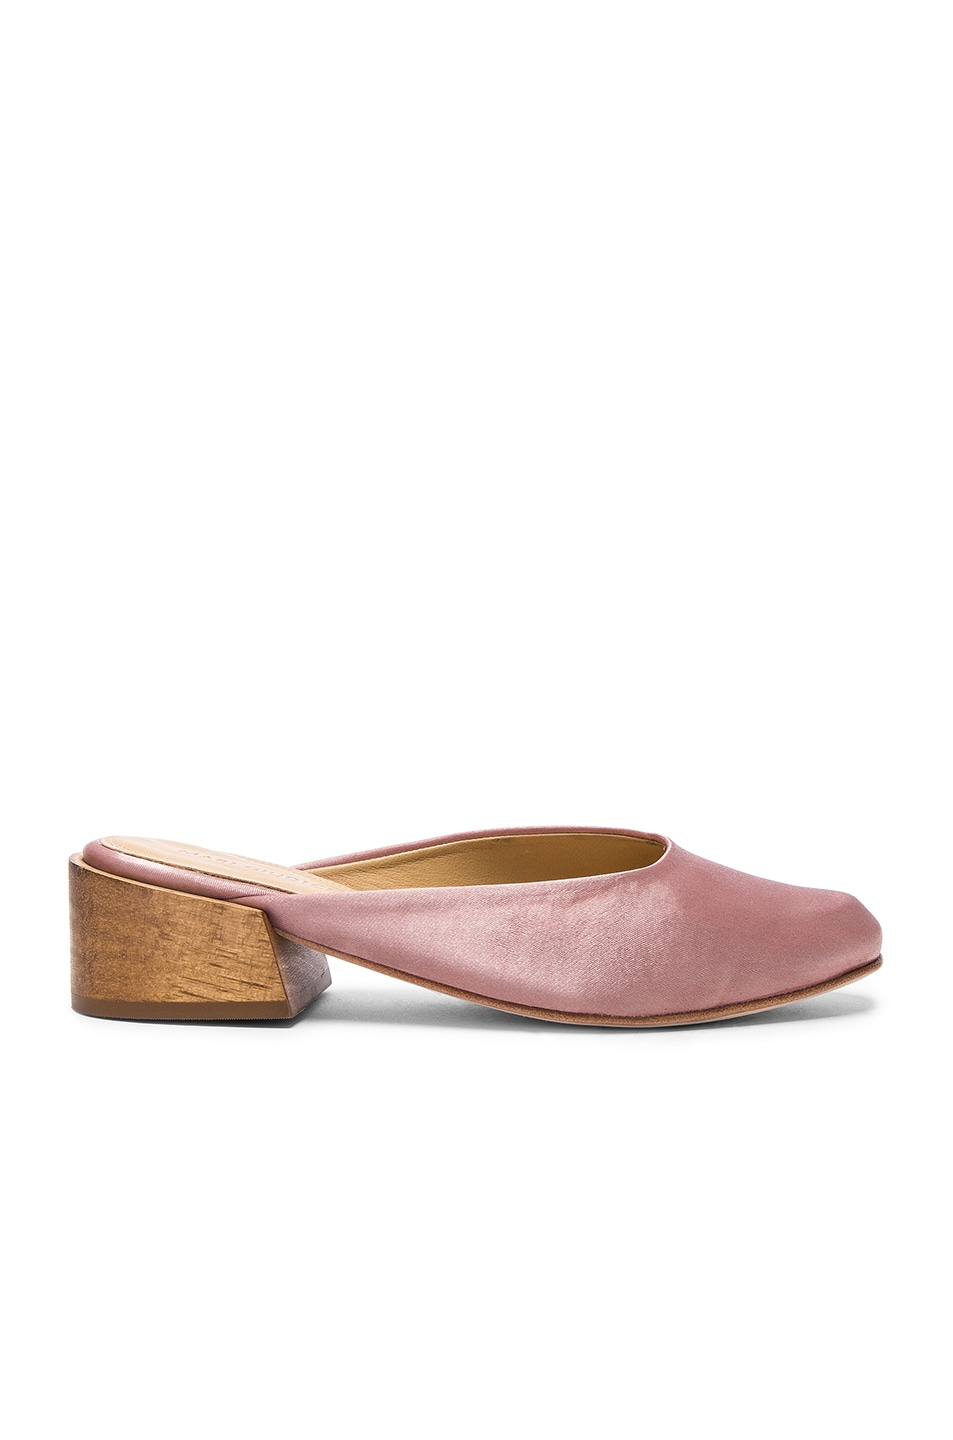 Image 1 of MARI GIUDICELLI Satin Leblon Mules in Rose Satin